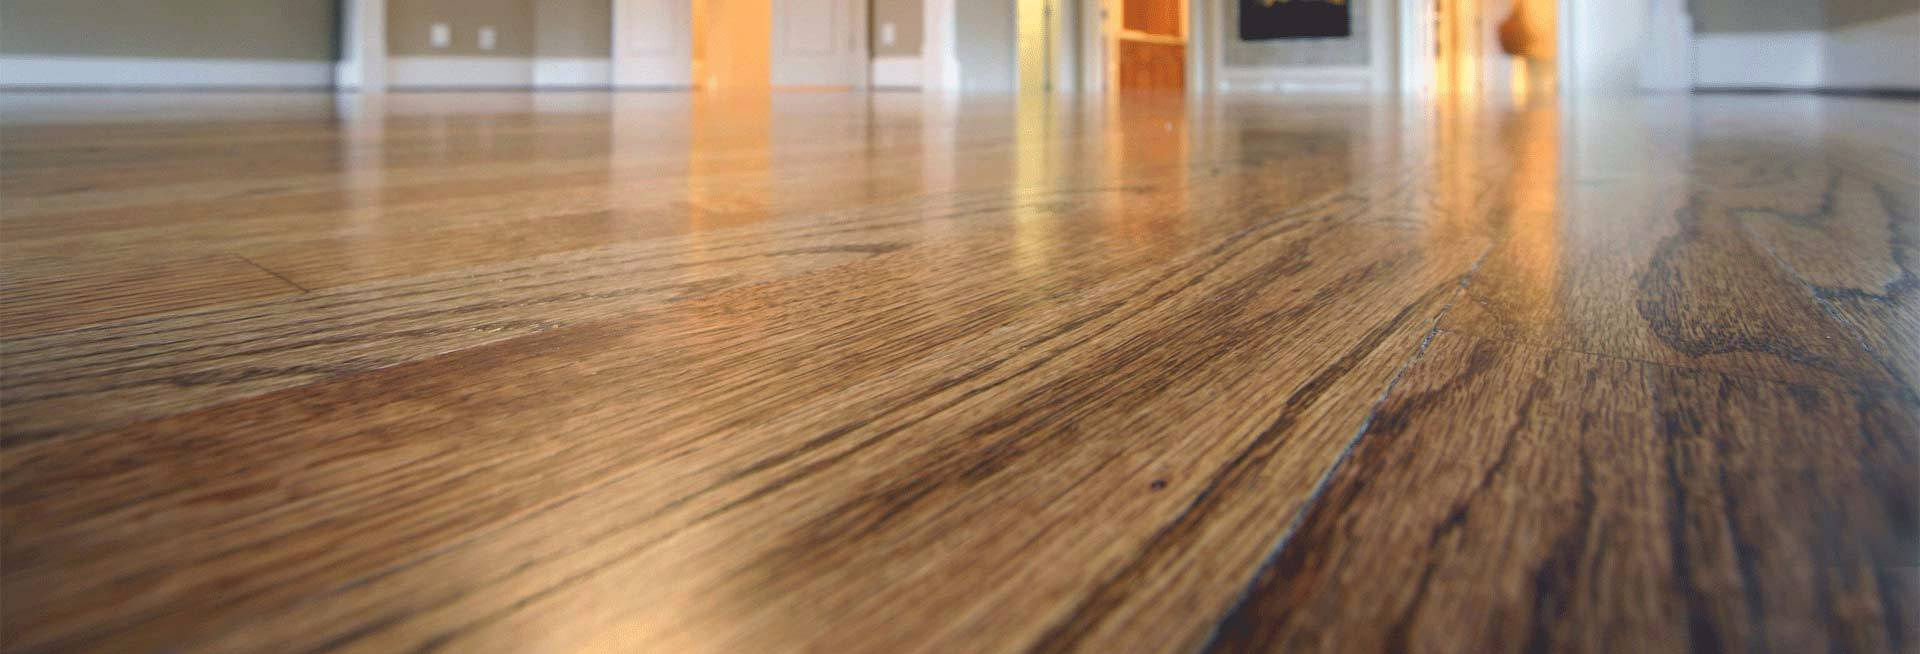 Wood Floor Cost Preview Medium Wooden Flooring Cost